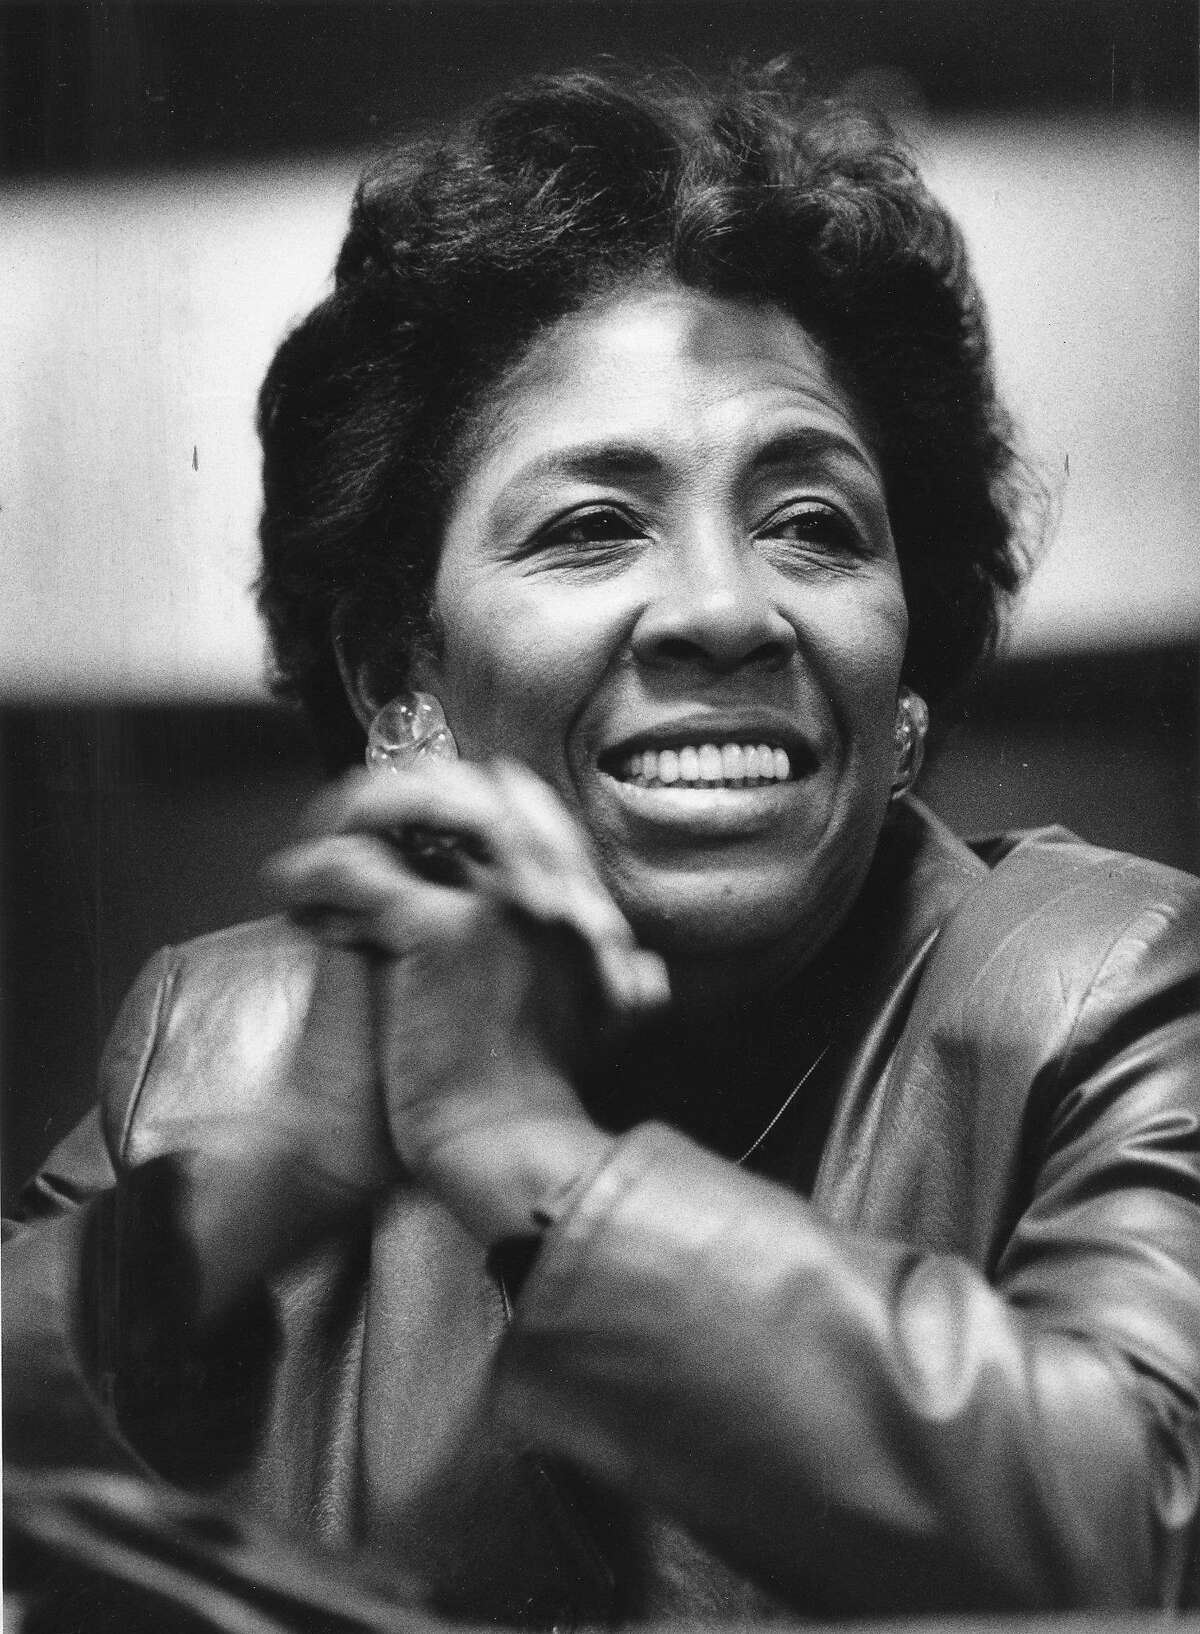 Doris Ward, candidate for 5th Congressional District, February 25, 1987